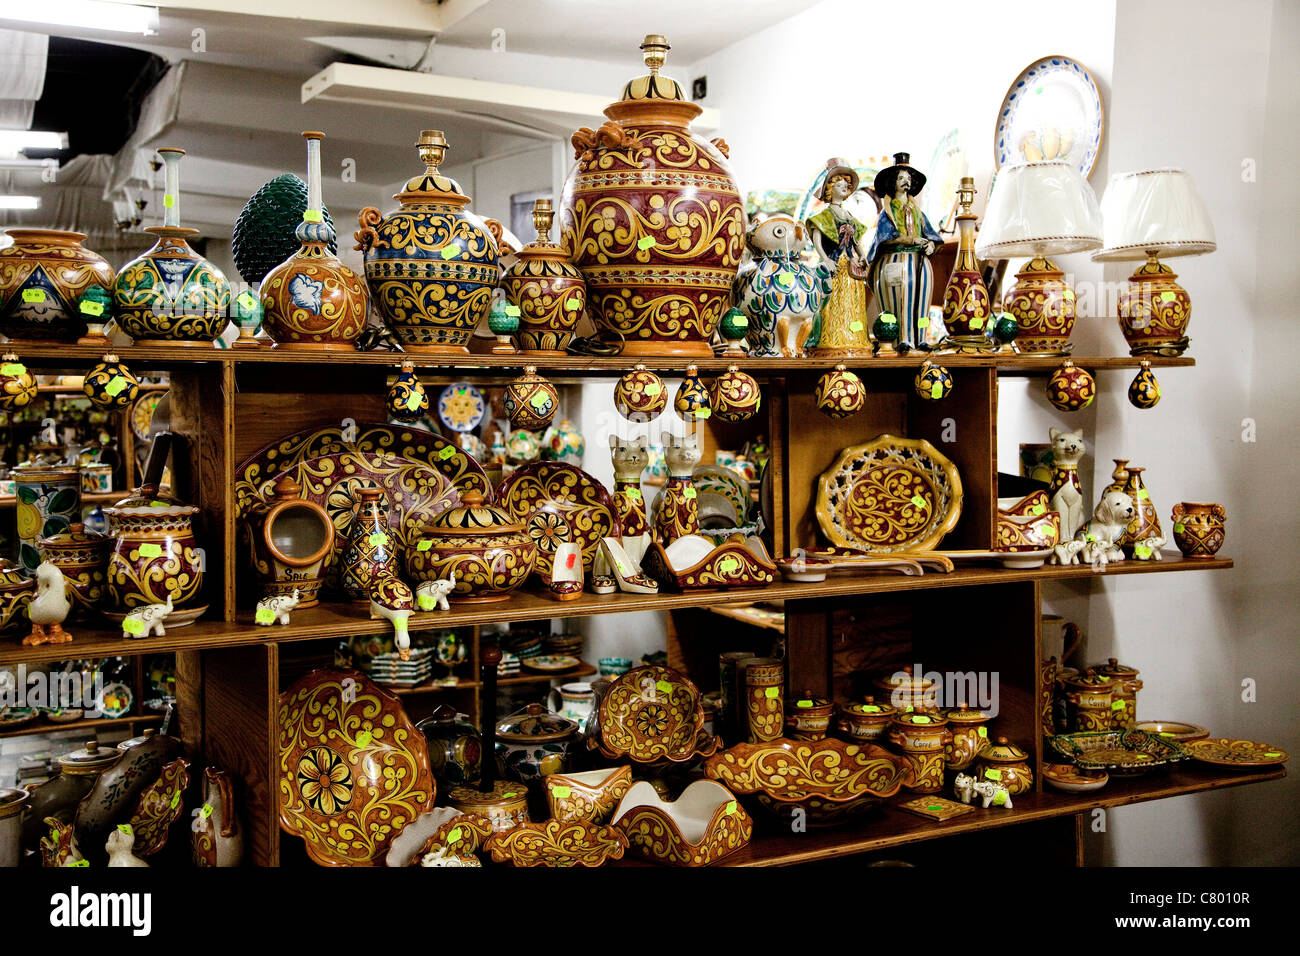 Souvenir Shop With Hand Decorated Ceramics Caltagirone